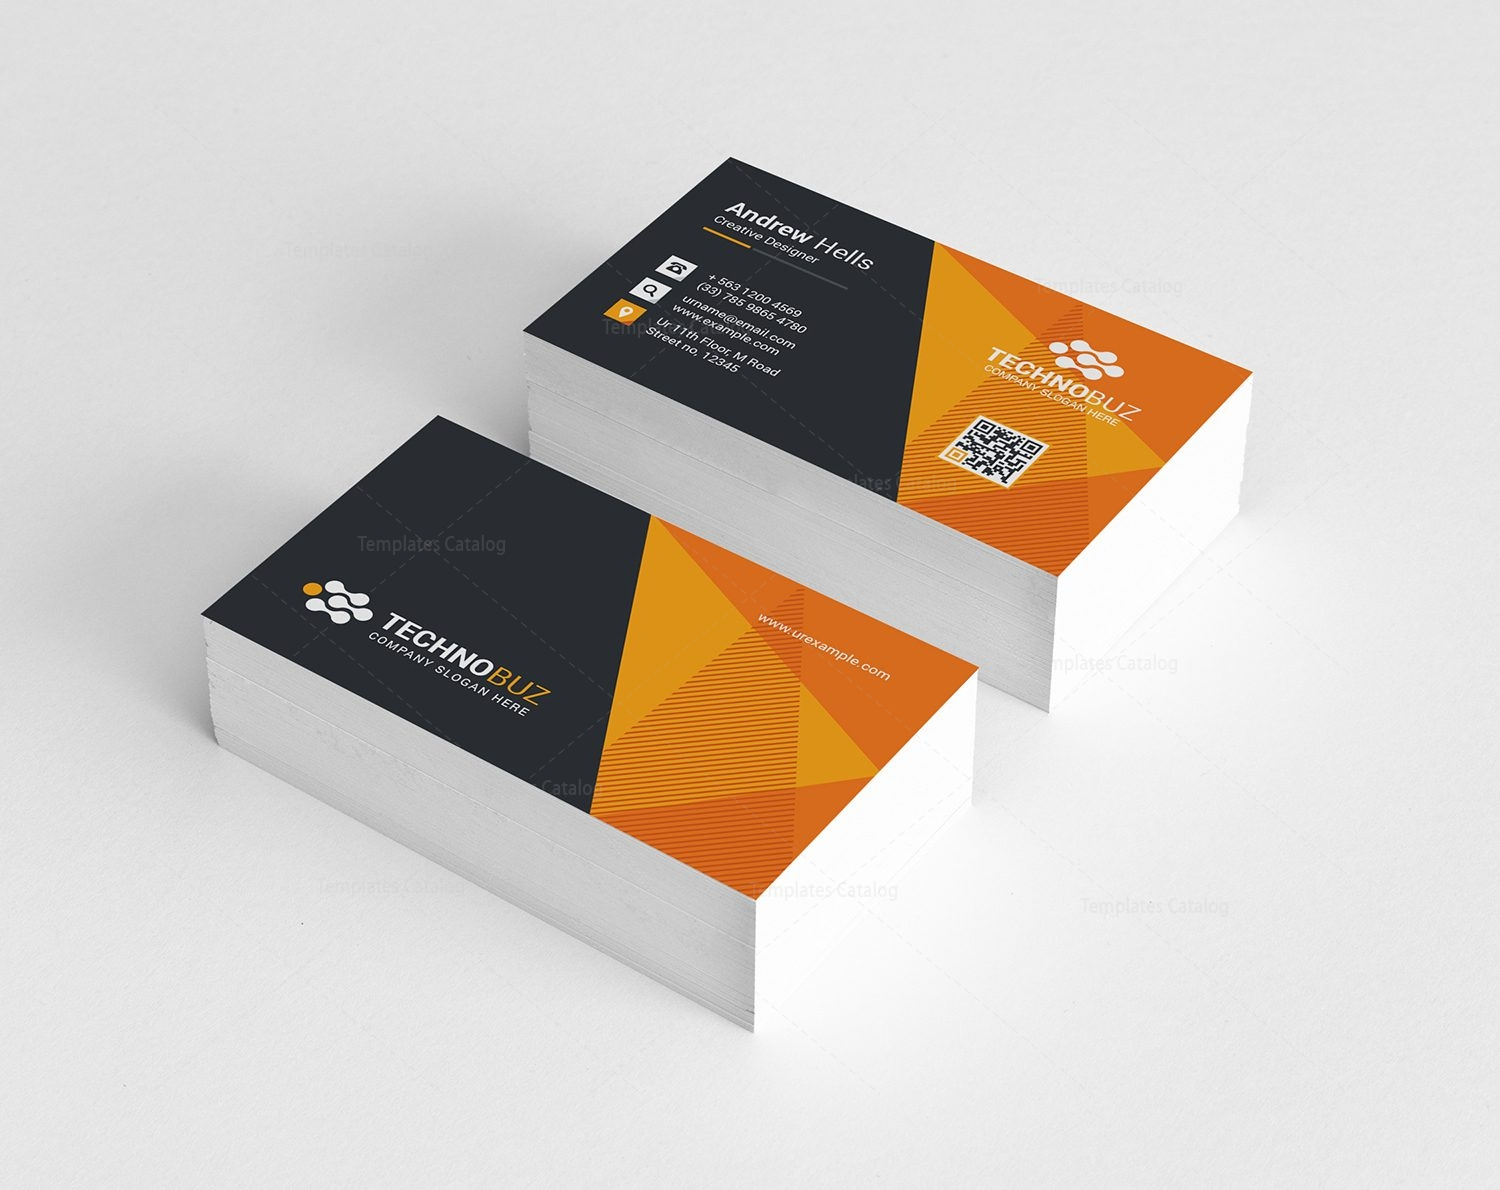 Vision modern business card template 000785 template catalog vision modern business card template 4 fbccfo Gallery